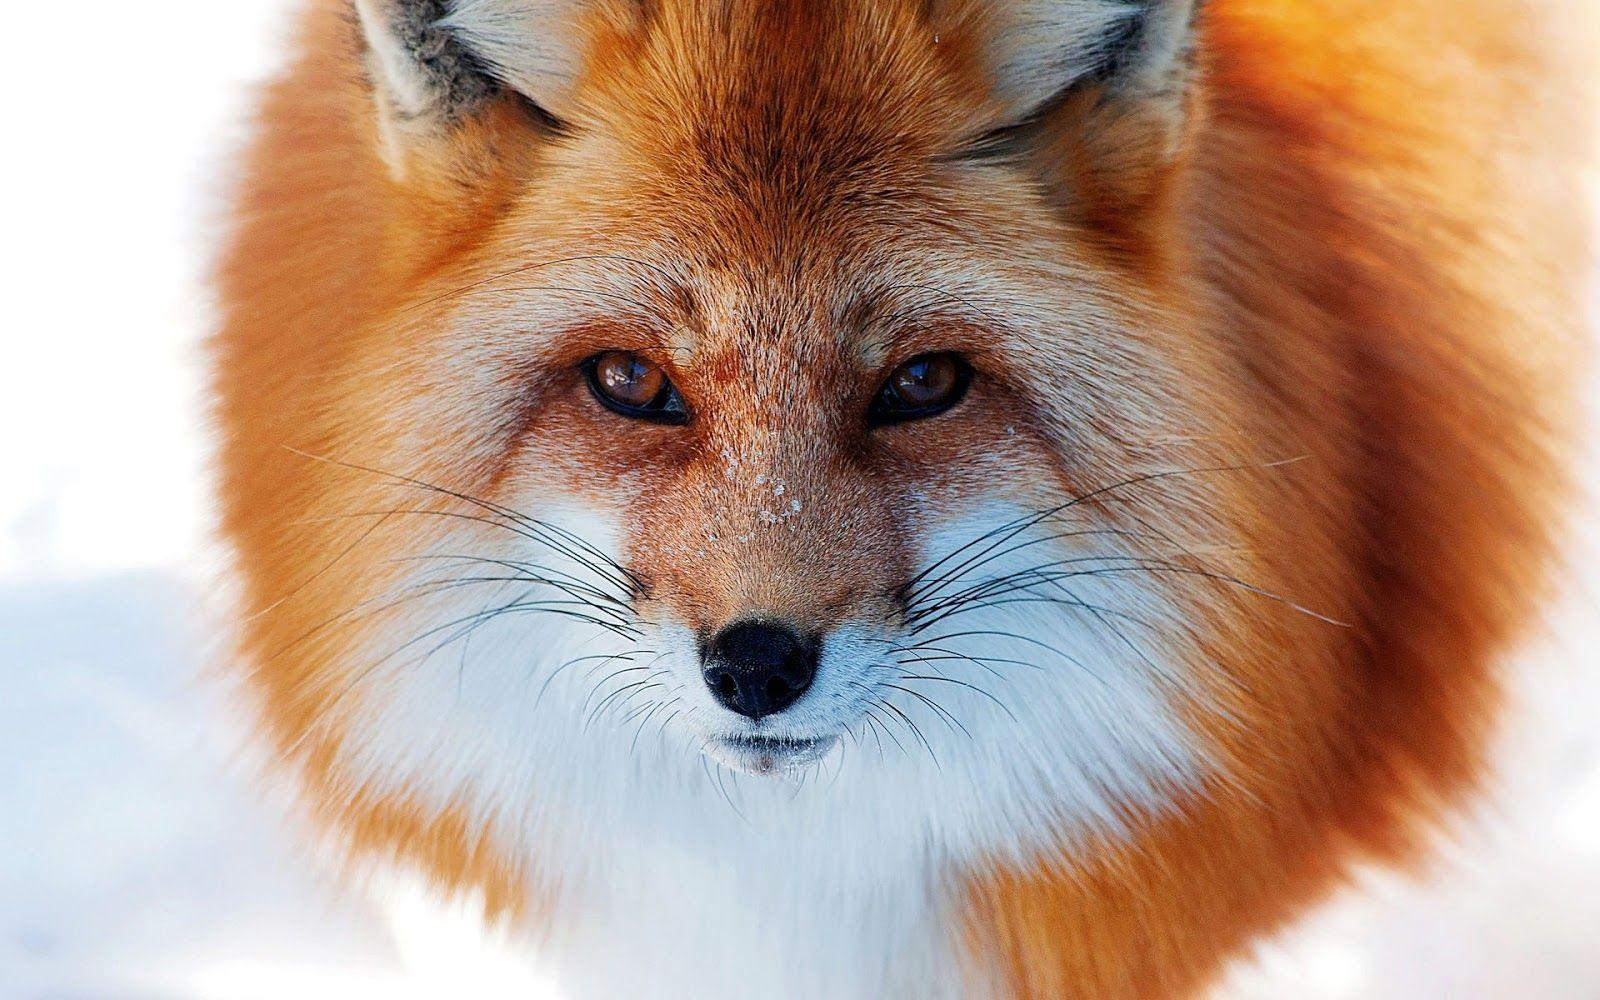 Close up photo of a red fox